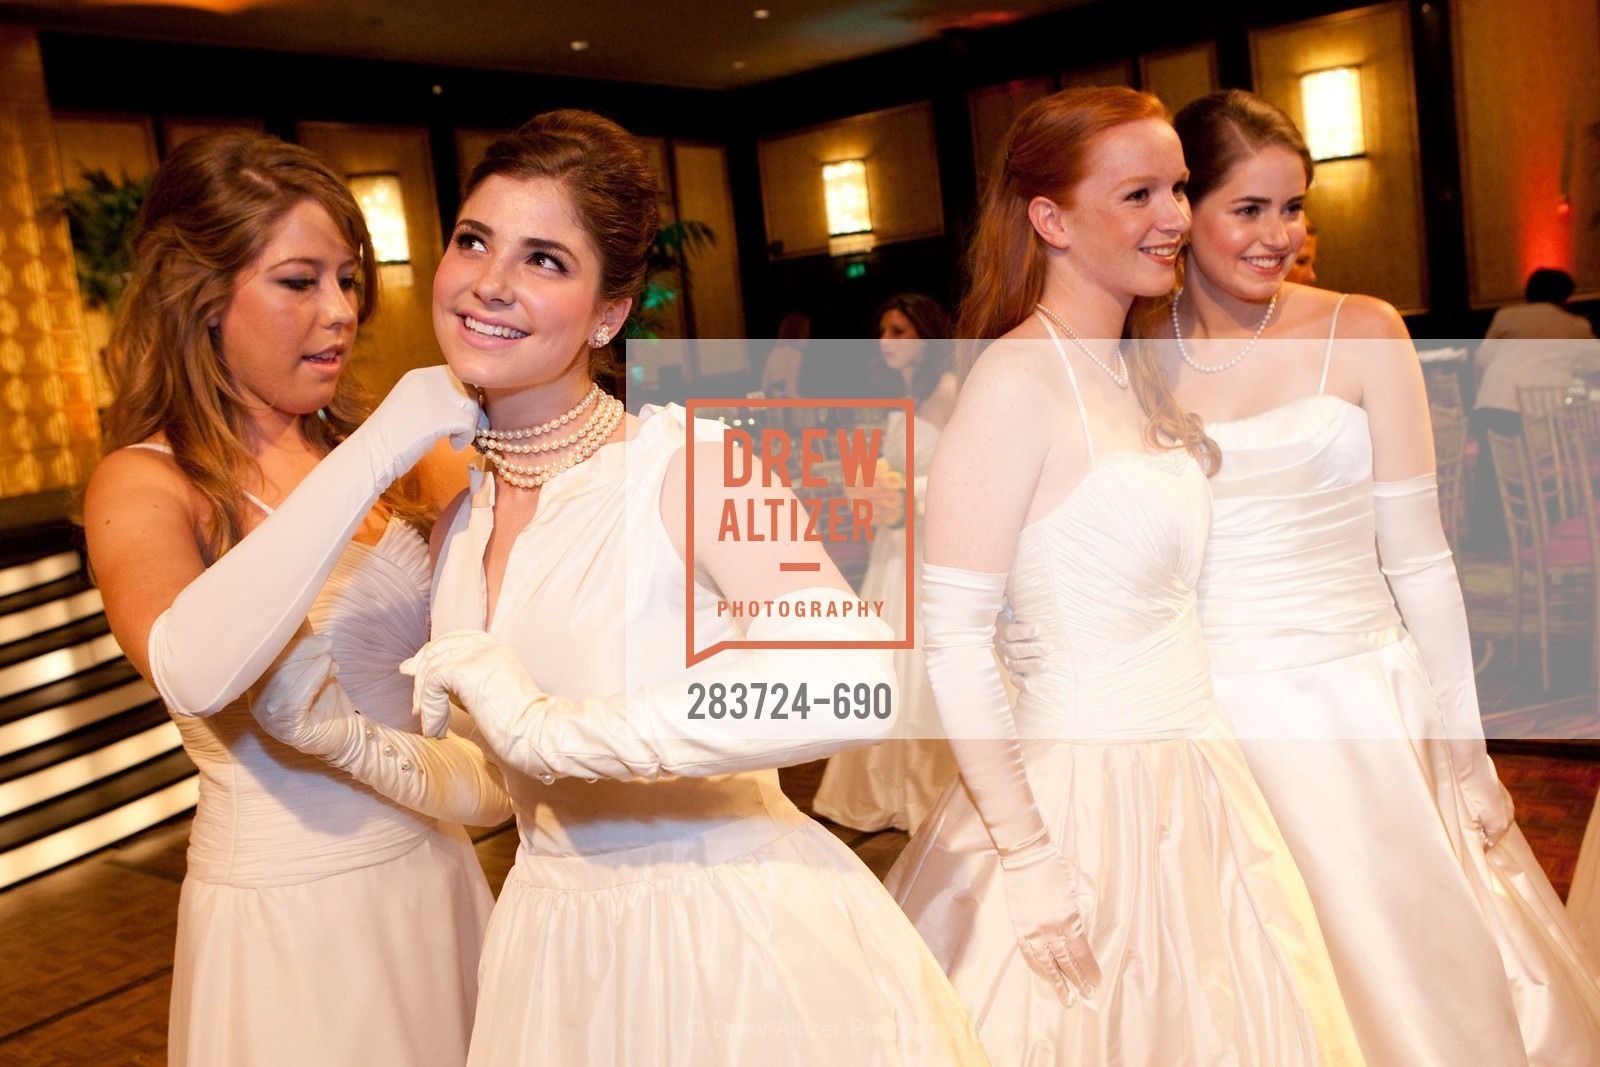 Victoria Renner Student, Denise McLeod Rollandi, 2009 Debutante Ball, Unknown, July 4th, 2008,Drew Altizer, Drew Altizer Photography, full-service agency, private events, San Francisco photographer, photographer california